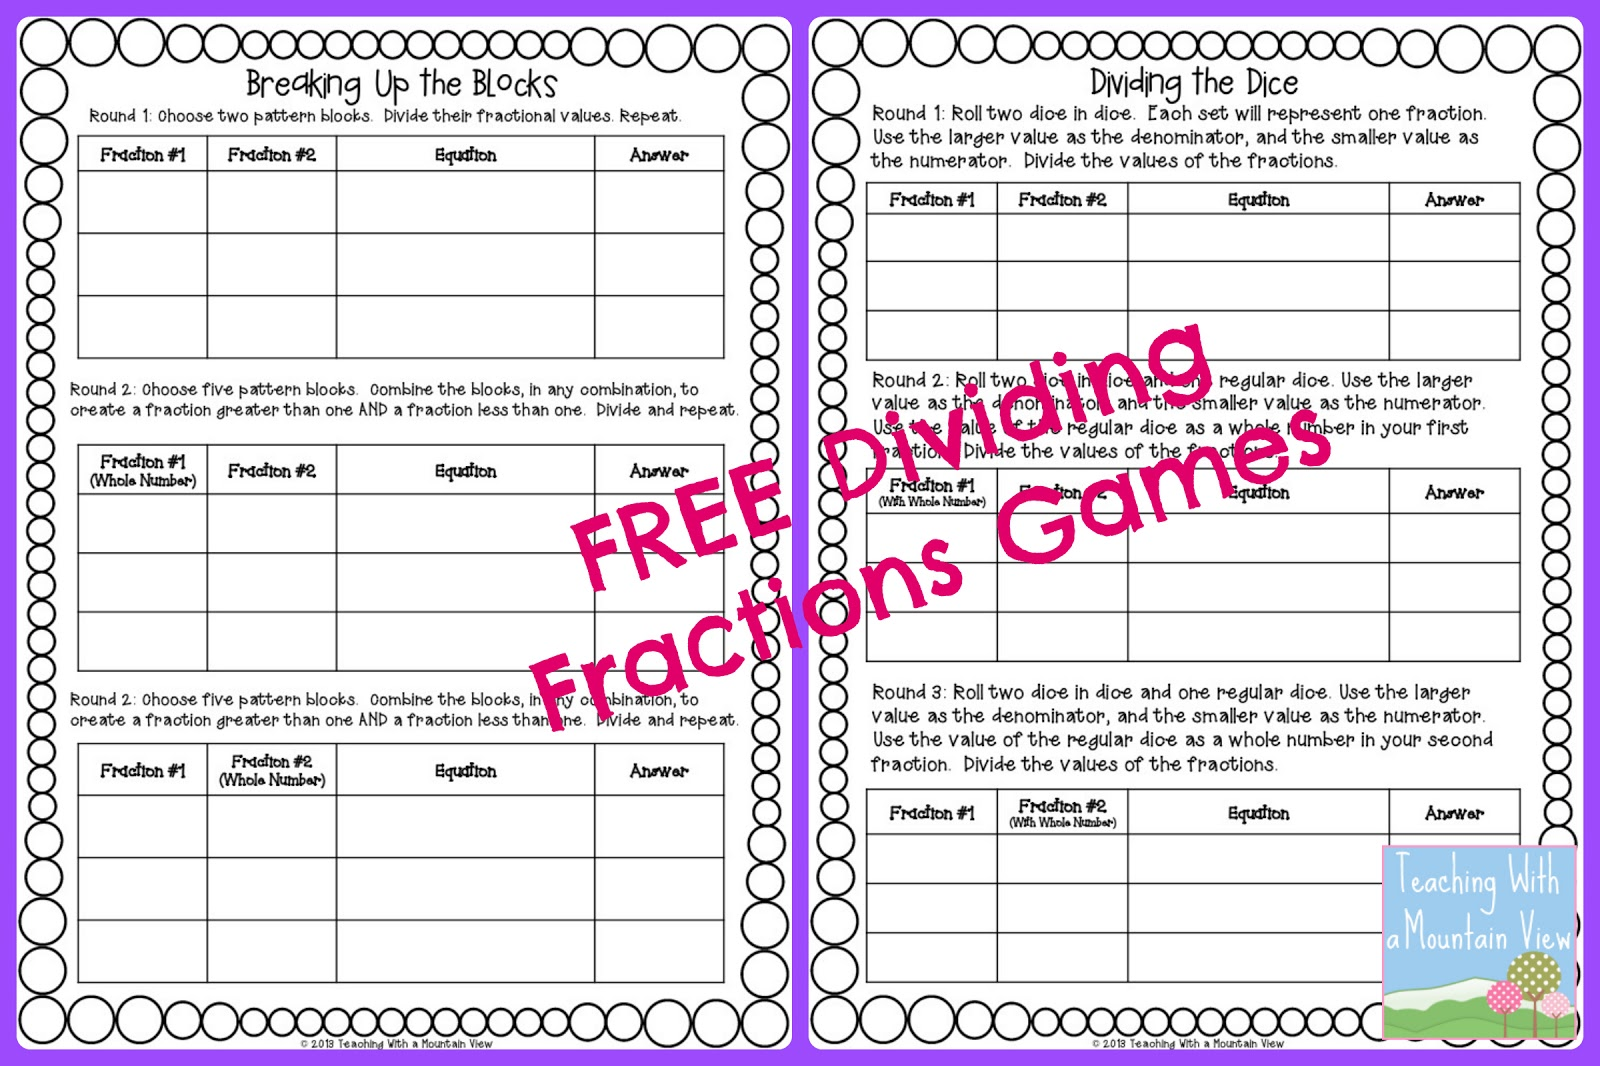 Teaching With A Mountain View Dividing Fractions Anchor Chart Game Freebie And Math Journal